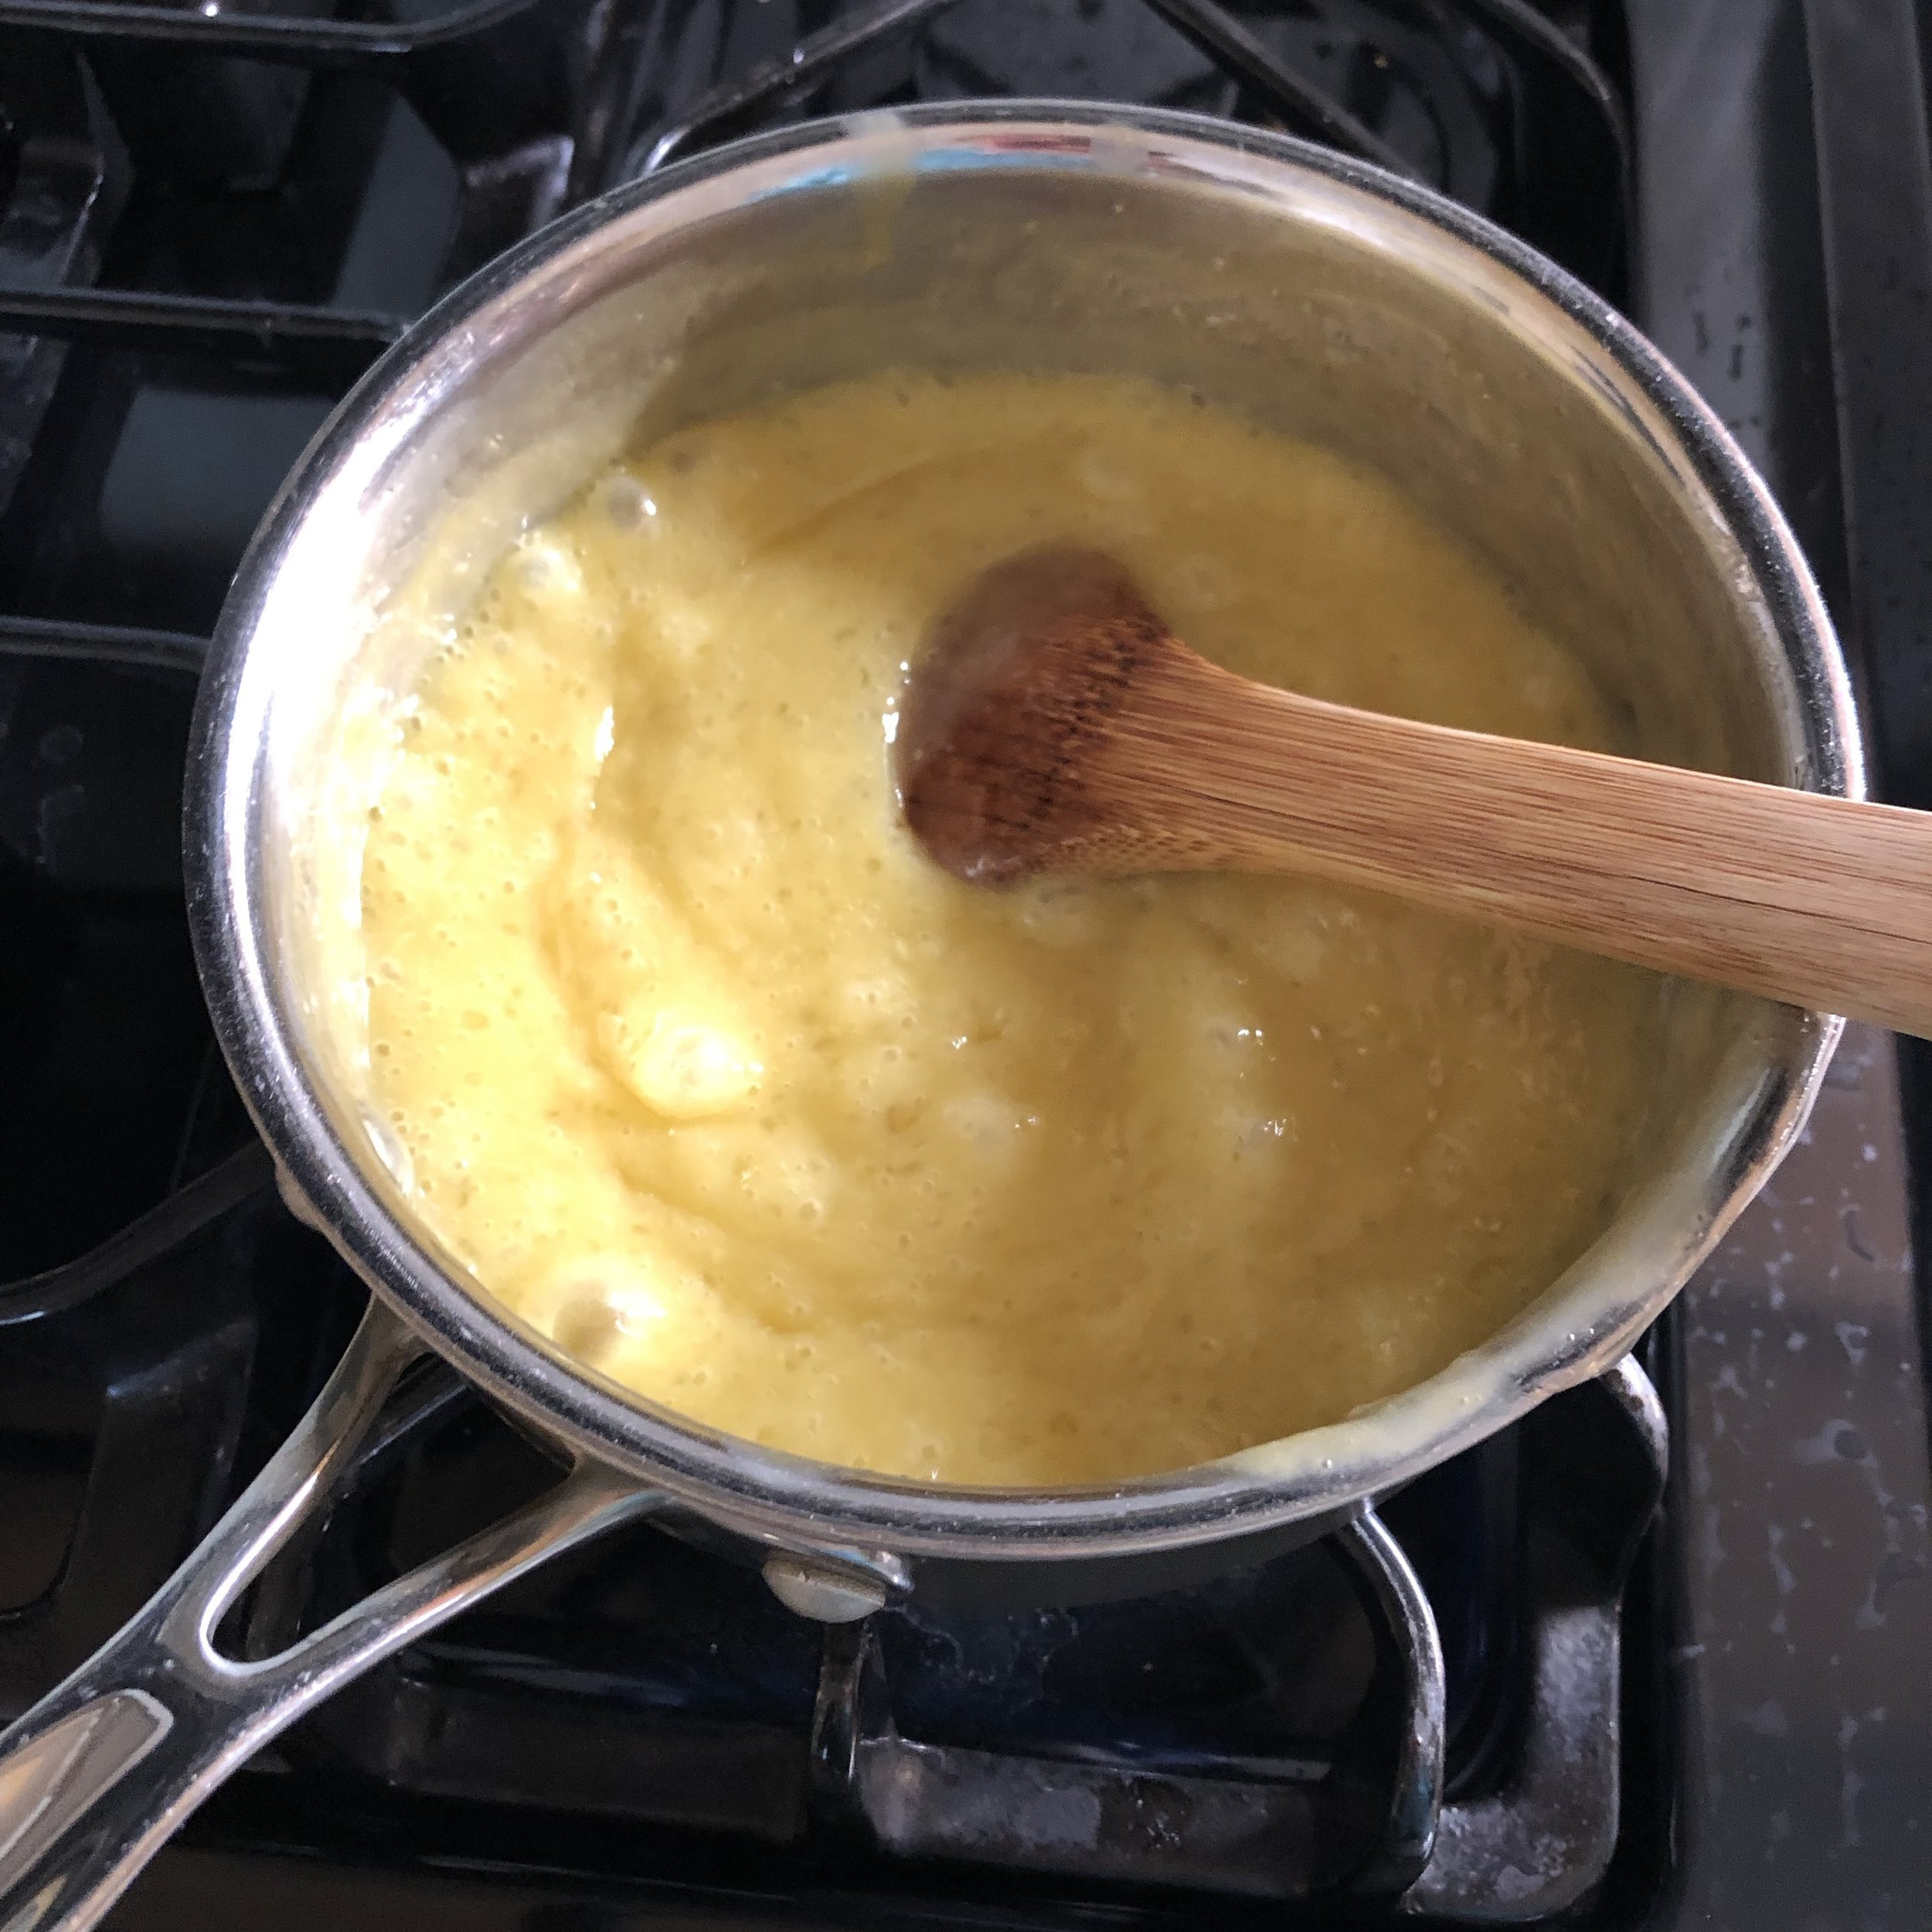 Cook mixture on medium high heat to thicken. It should bubble gently. Stir frequently.